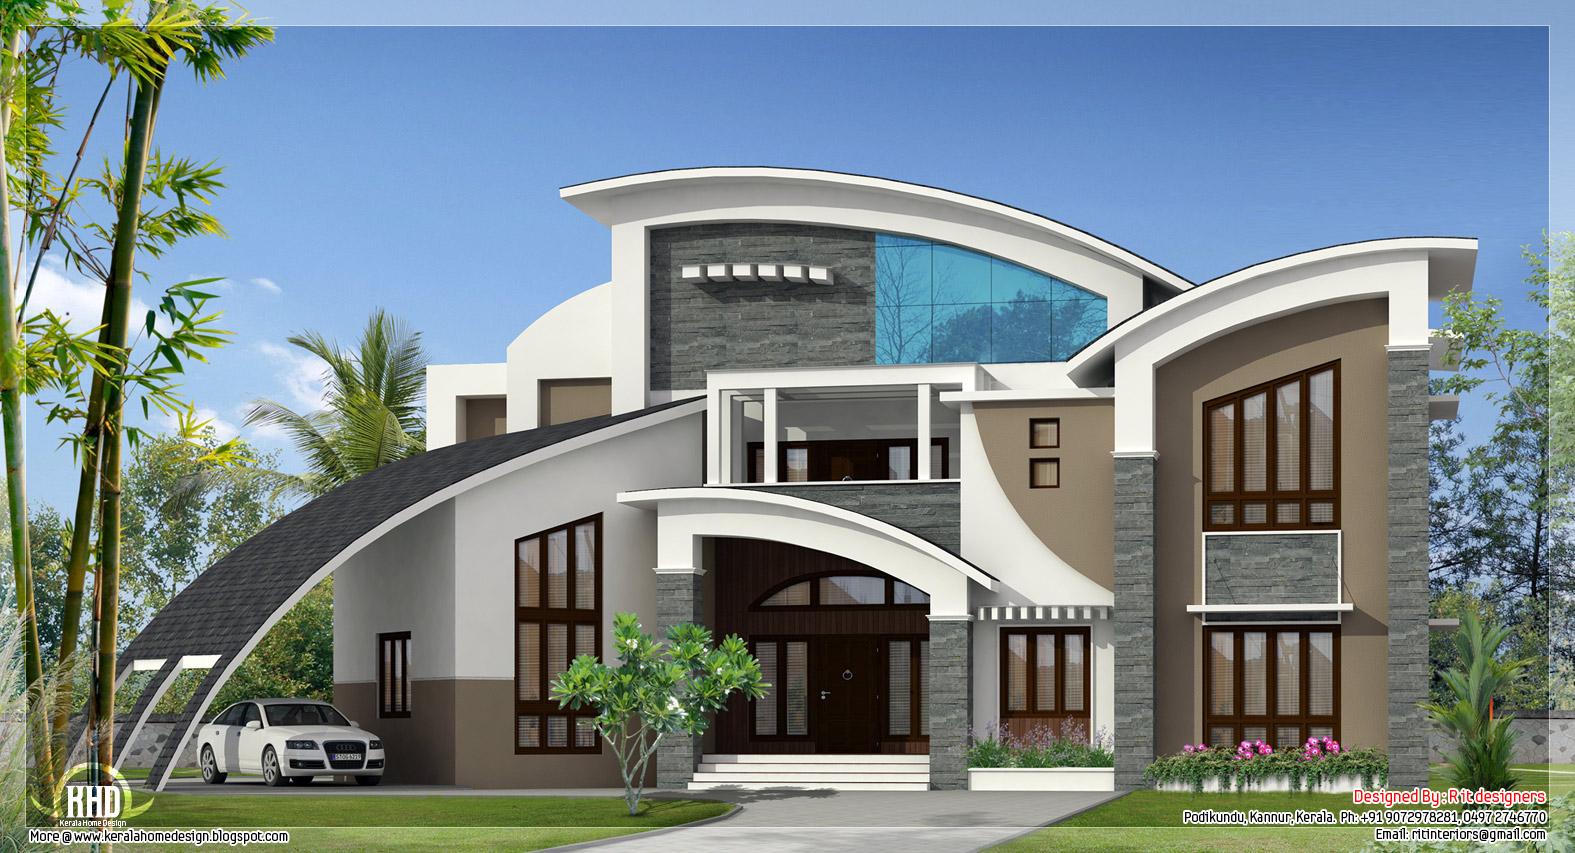 A Unique Super Luxury Kerala Villa Kerala House Design Idea